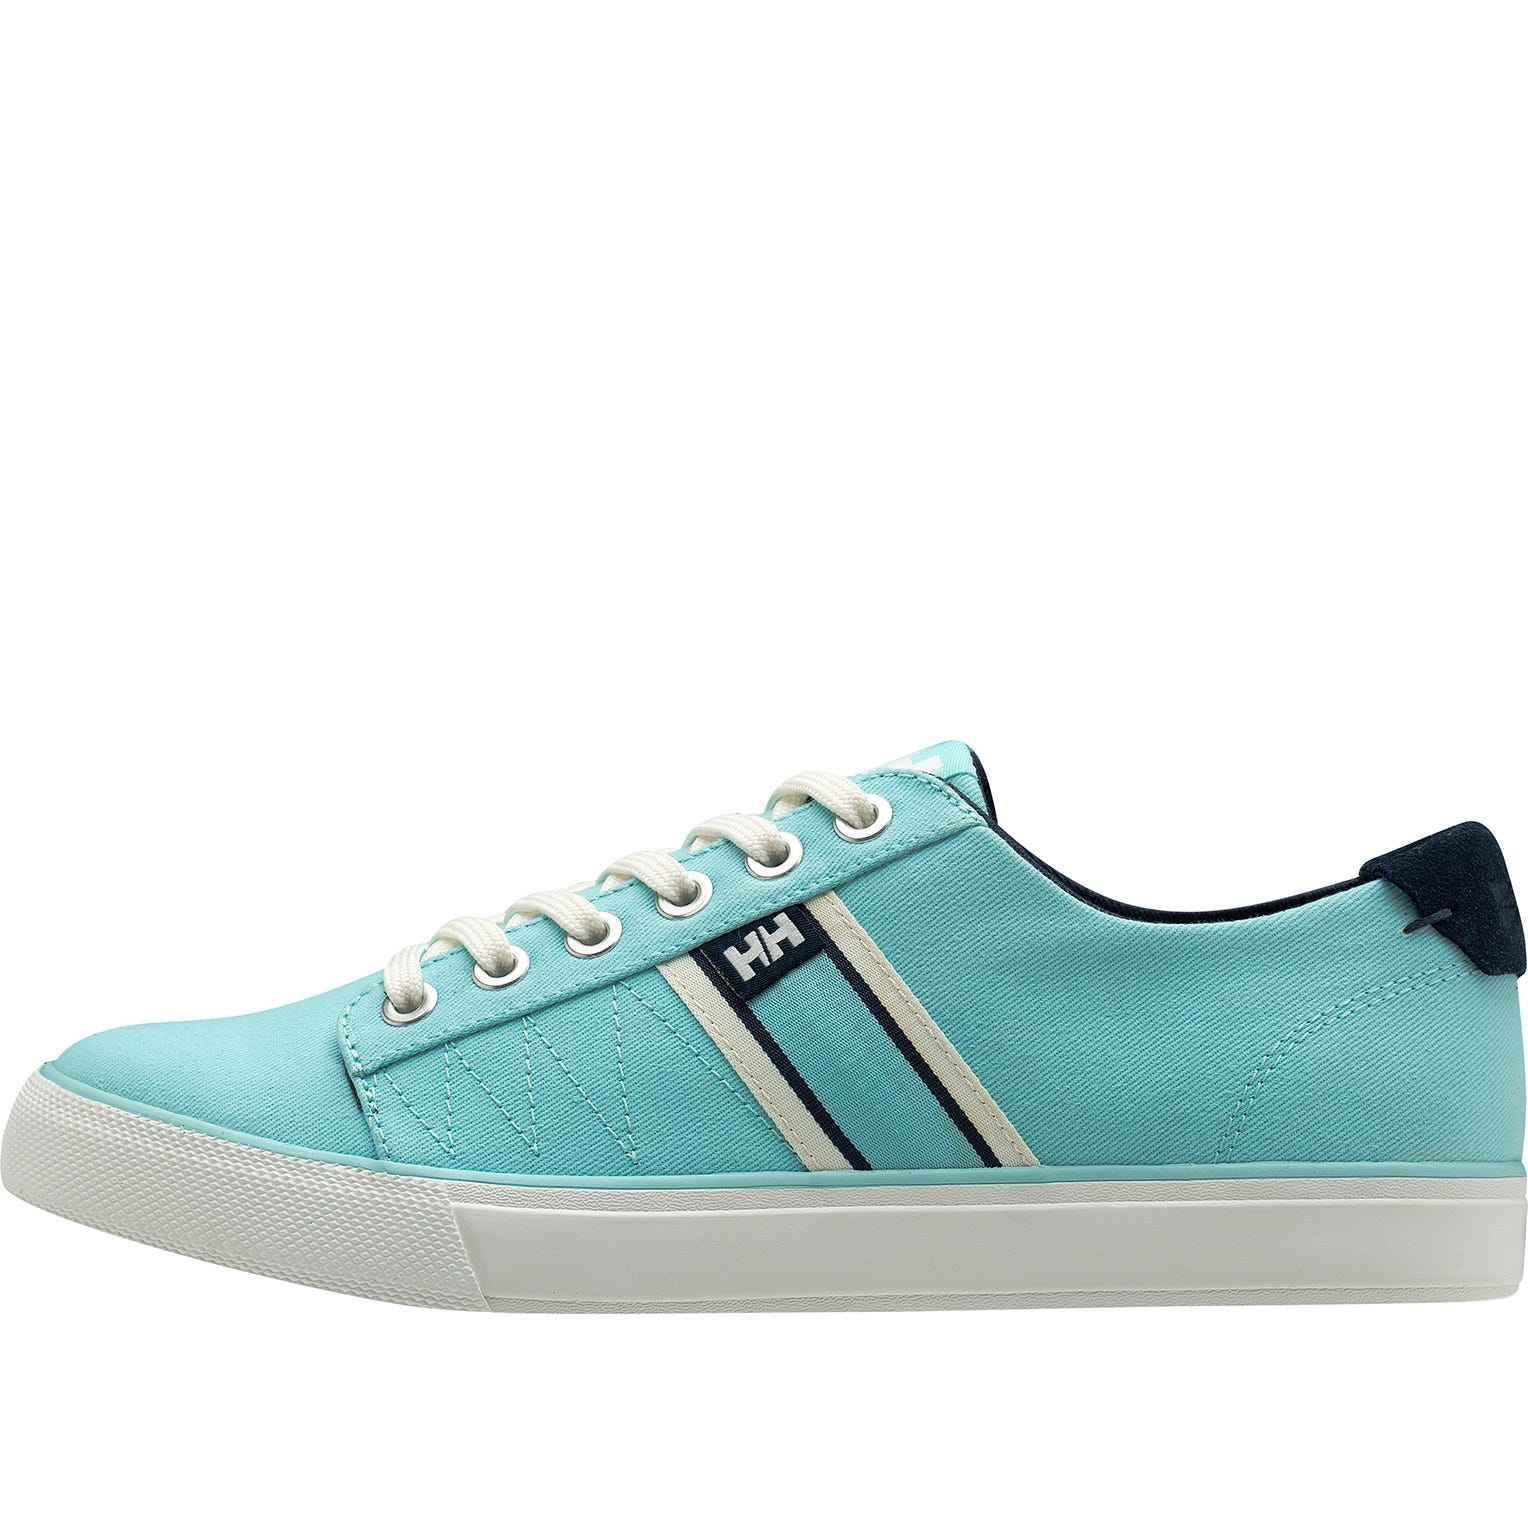 Canvas Low Top Sneaker Casual Skate Shoe Mens Womens Syrian Flag